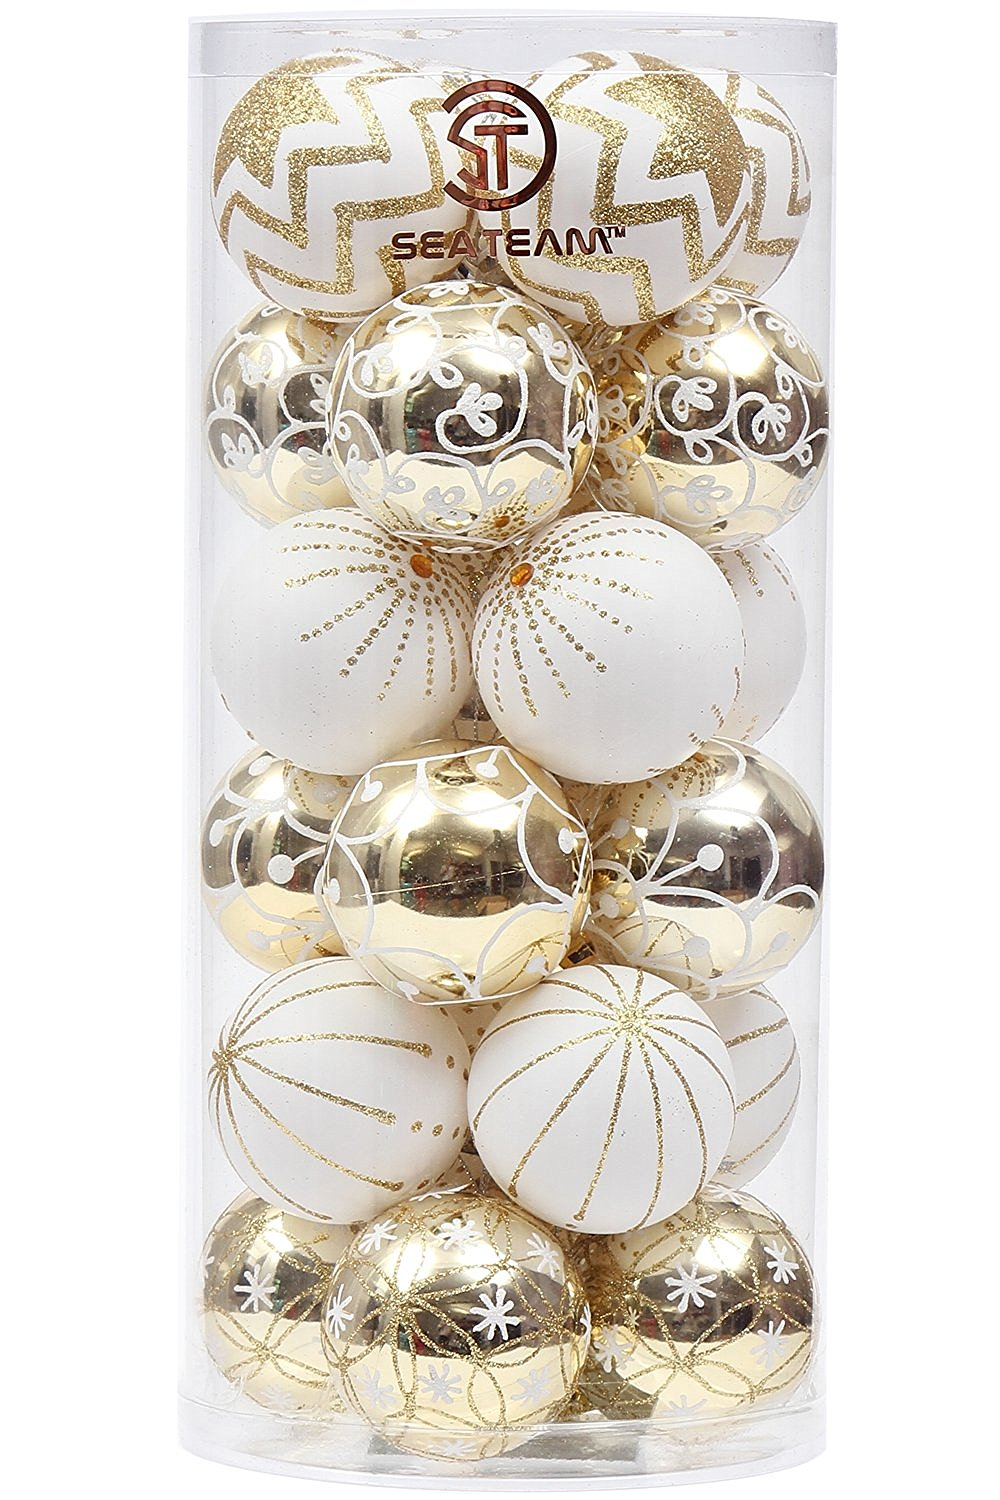 Sea Team Delicate Contrast Color Hanging Baubles Christmas Ball Ornaments Set – 30 Pieces, Available in Six Color Combinations